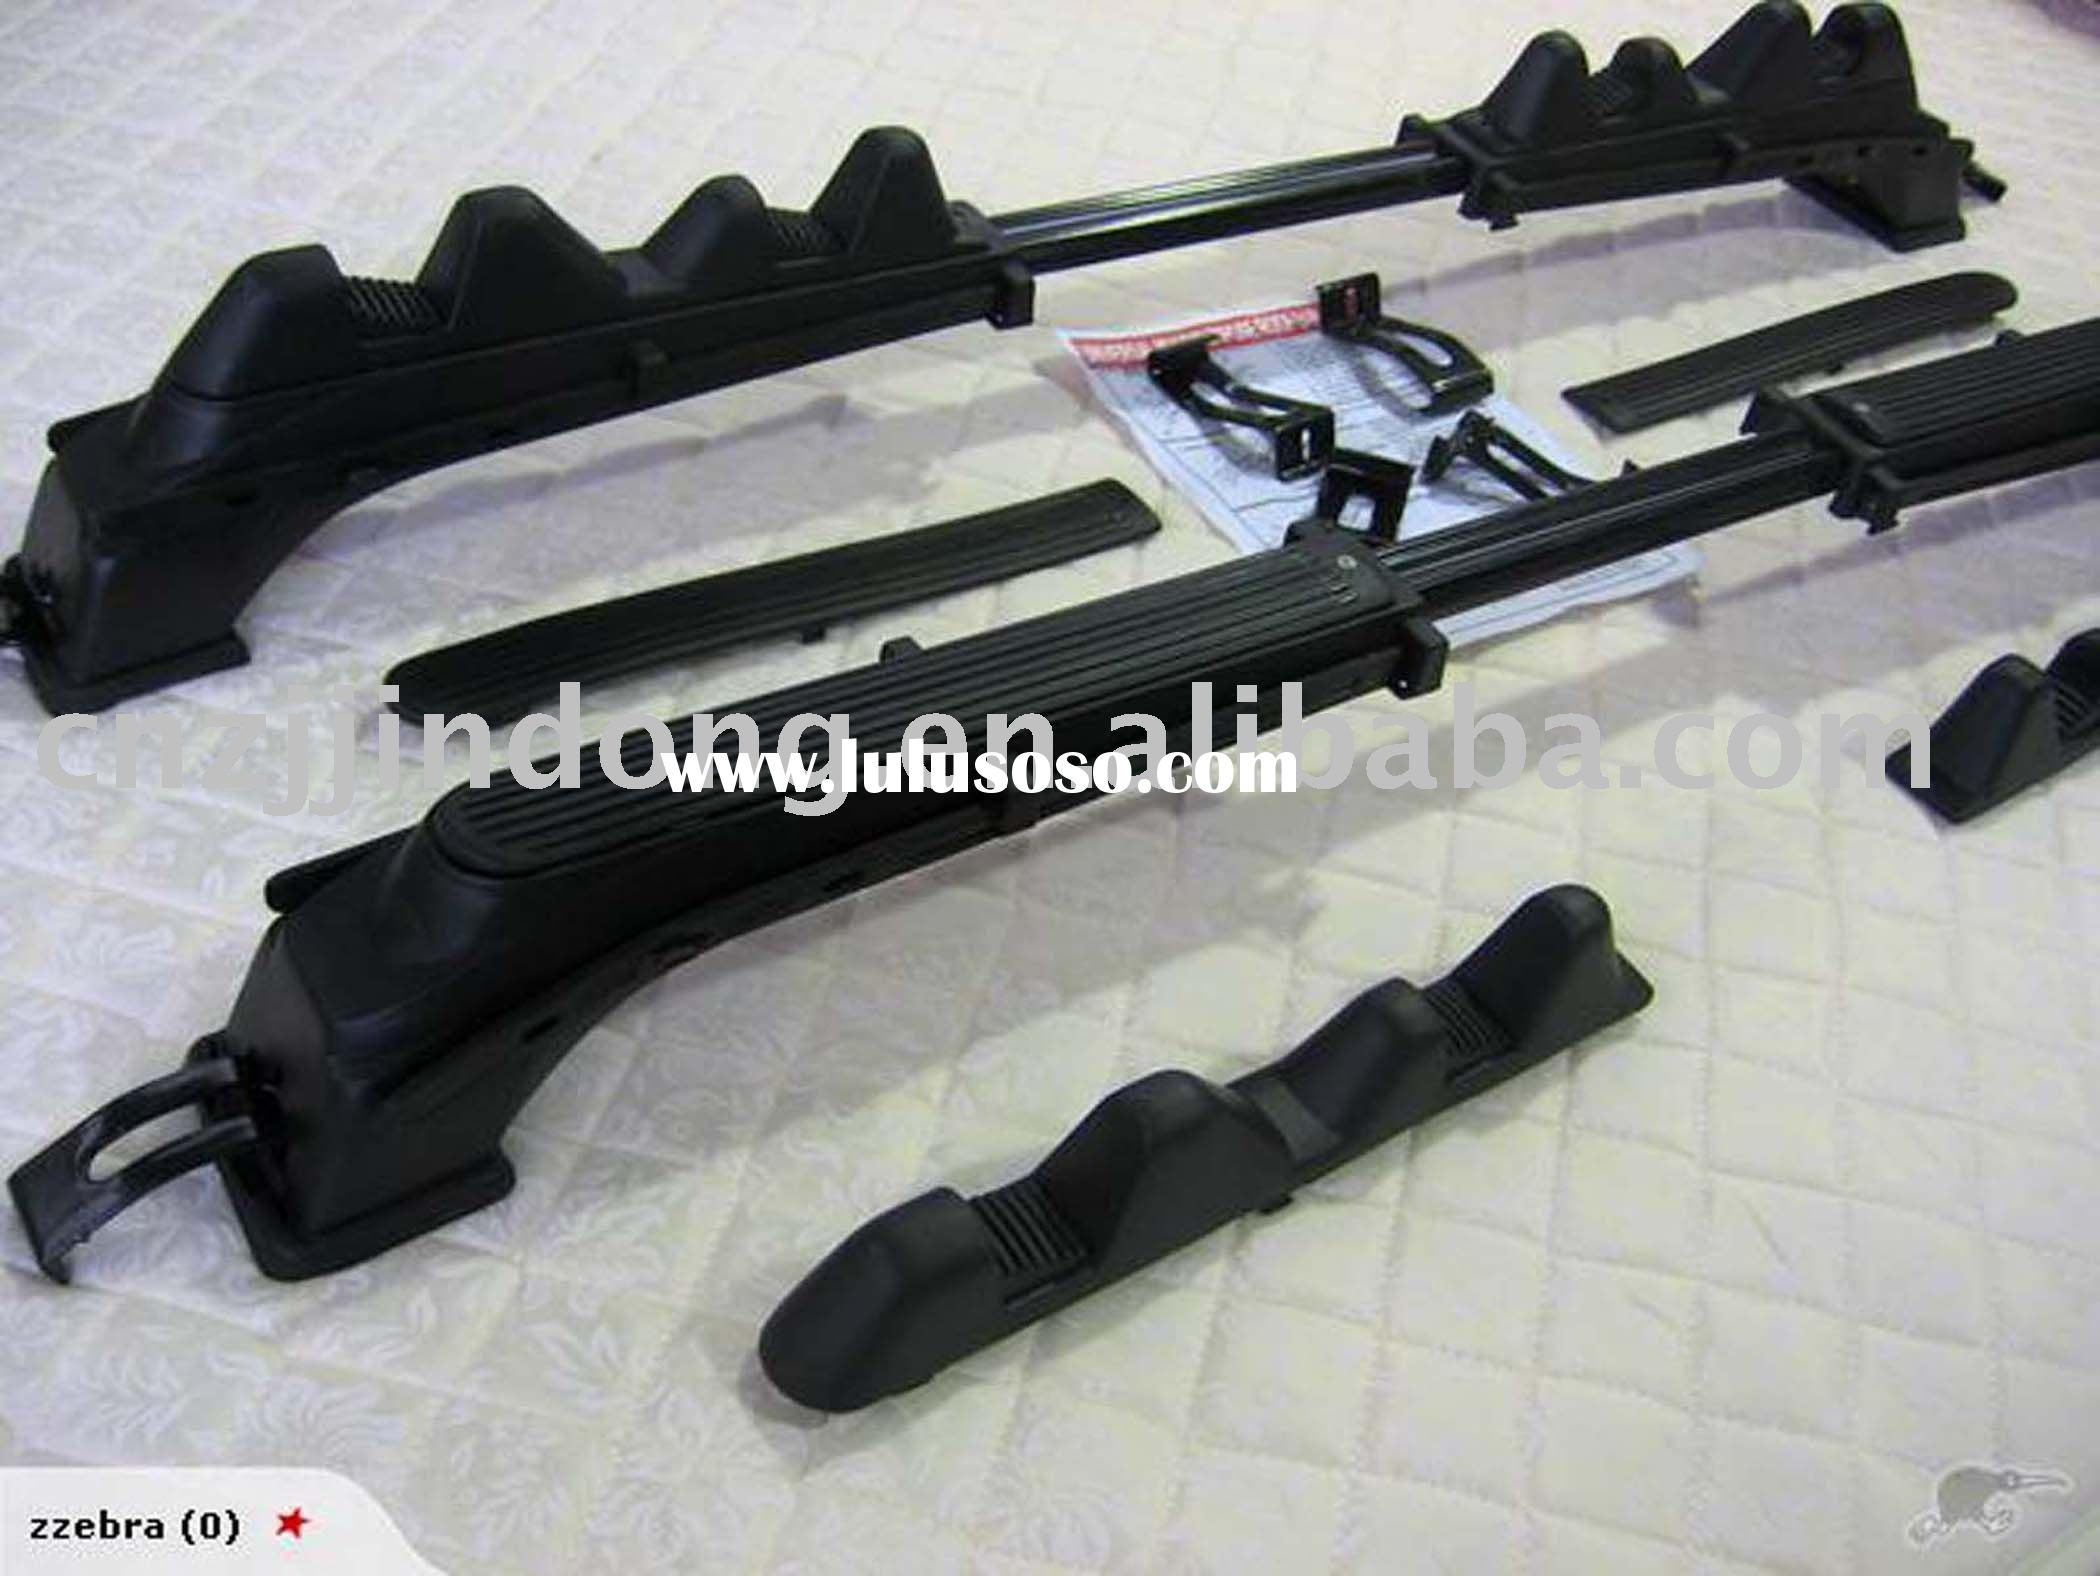 auto roof trays,Roof Rack,car roof rack,auto roof rack,roof rack assembly,roof bar,cargo carrier,lug